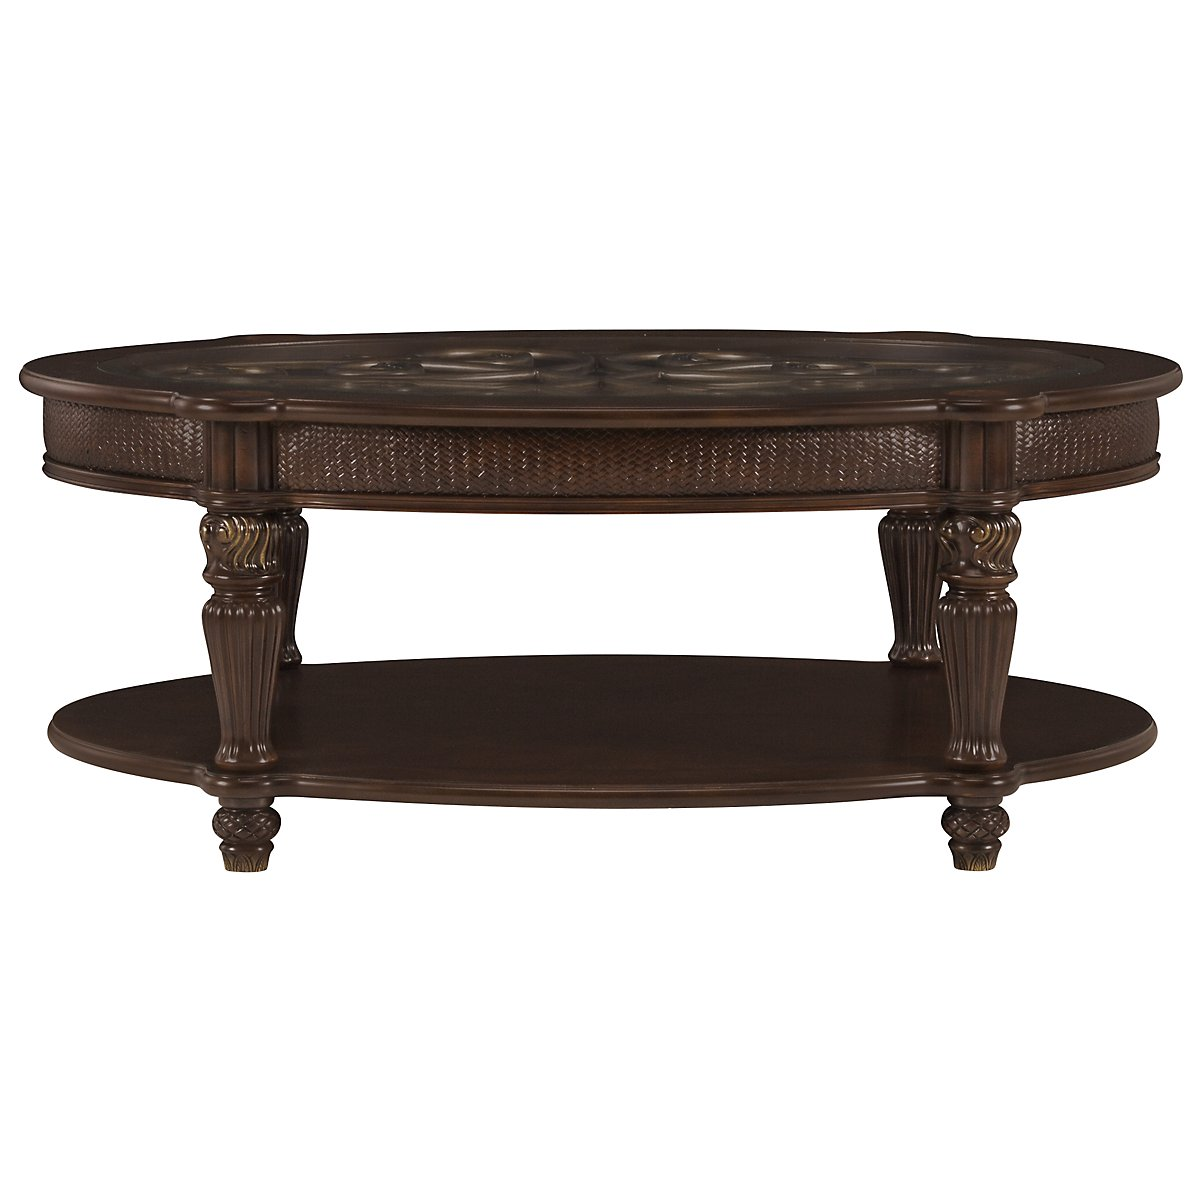 City furniture tradewinds dark tone metal oval coffee table for K furniture coffee table